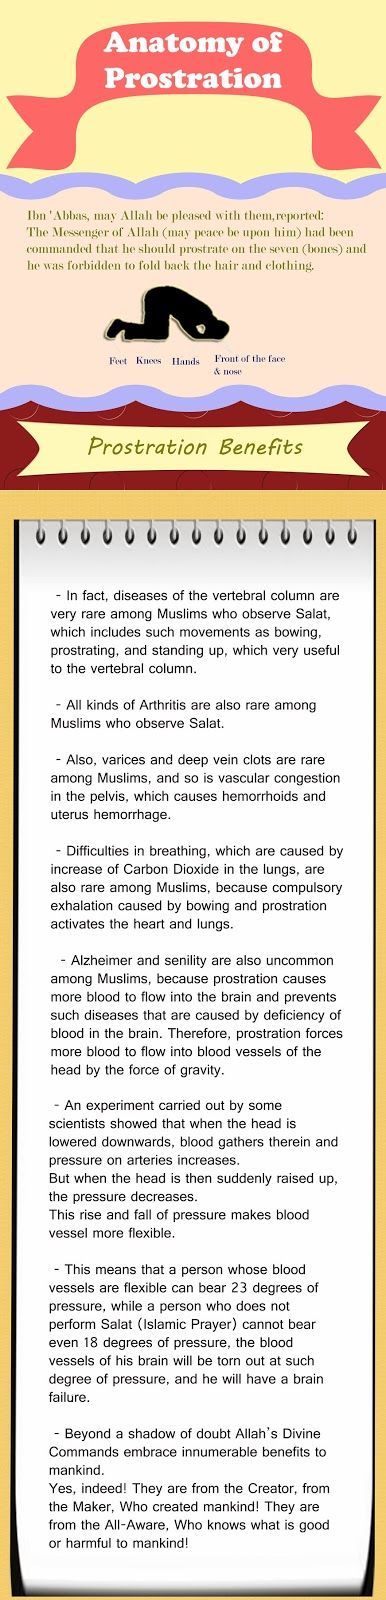 Anatomy of Prostration- Health benefits of performing salah